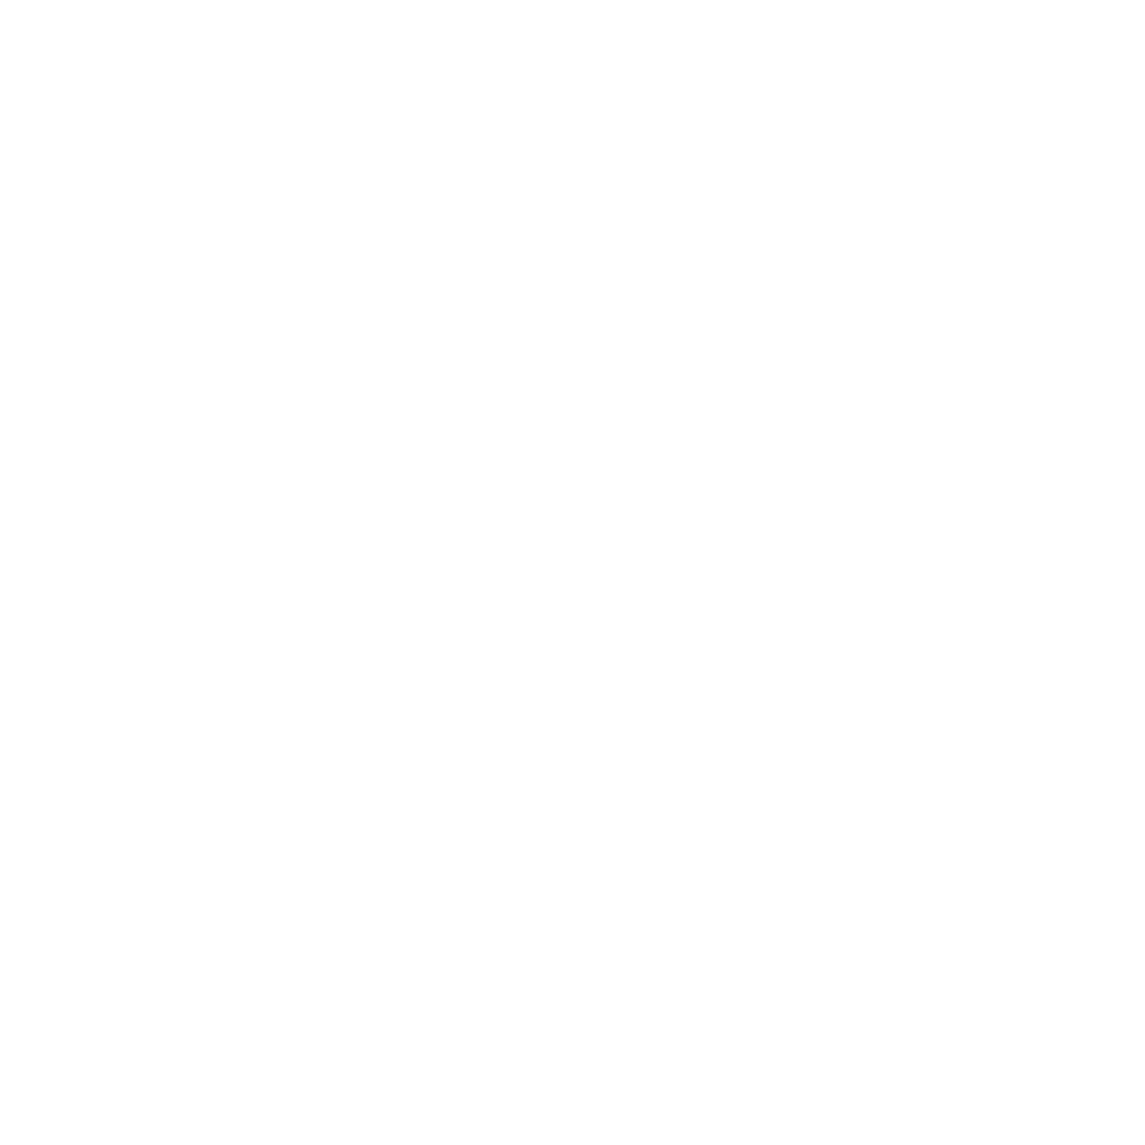 Inbound Marketing Services Icon for the Best Web Design in Nashville TN, Horton Group who also provides Nashville SEO, Inbound Marketing and Web Support.